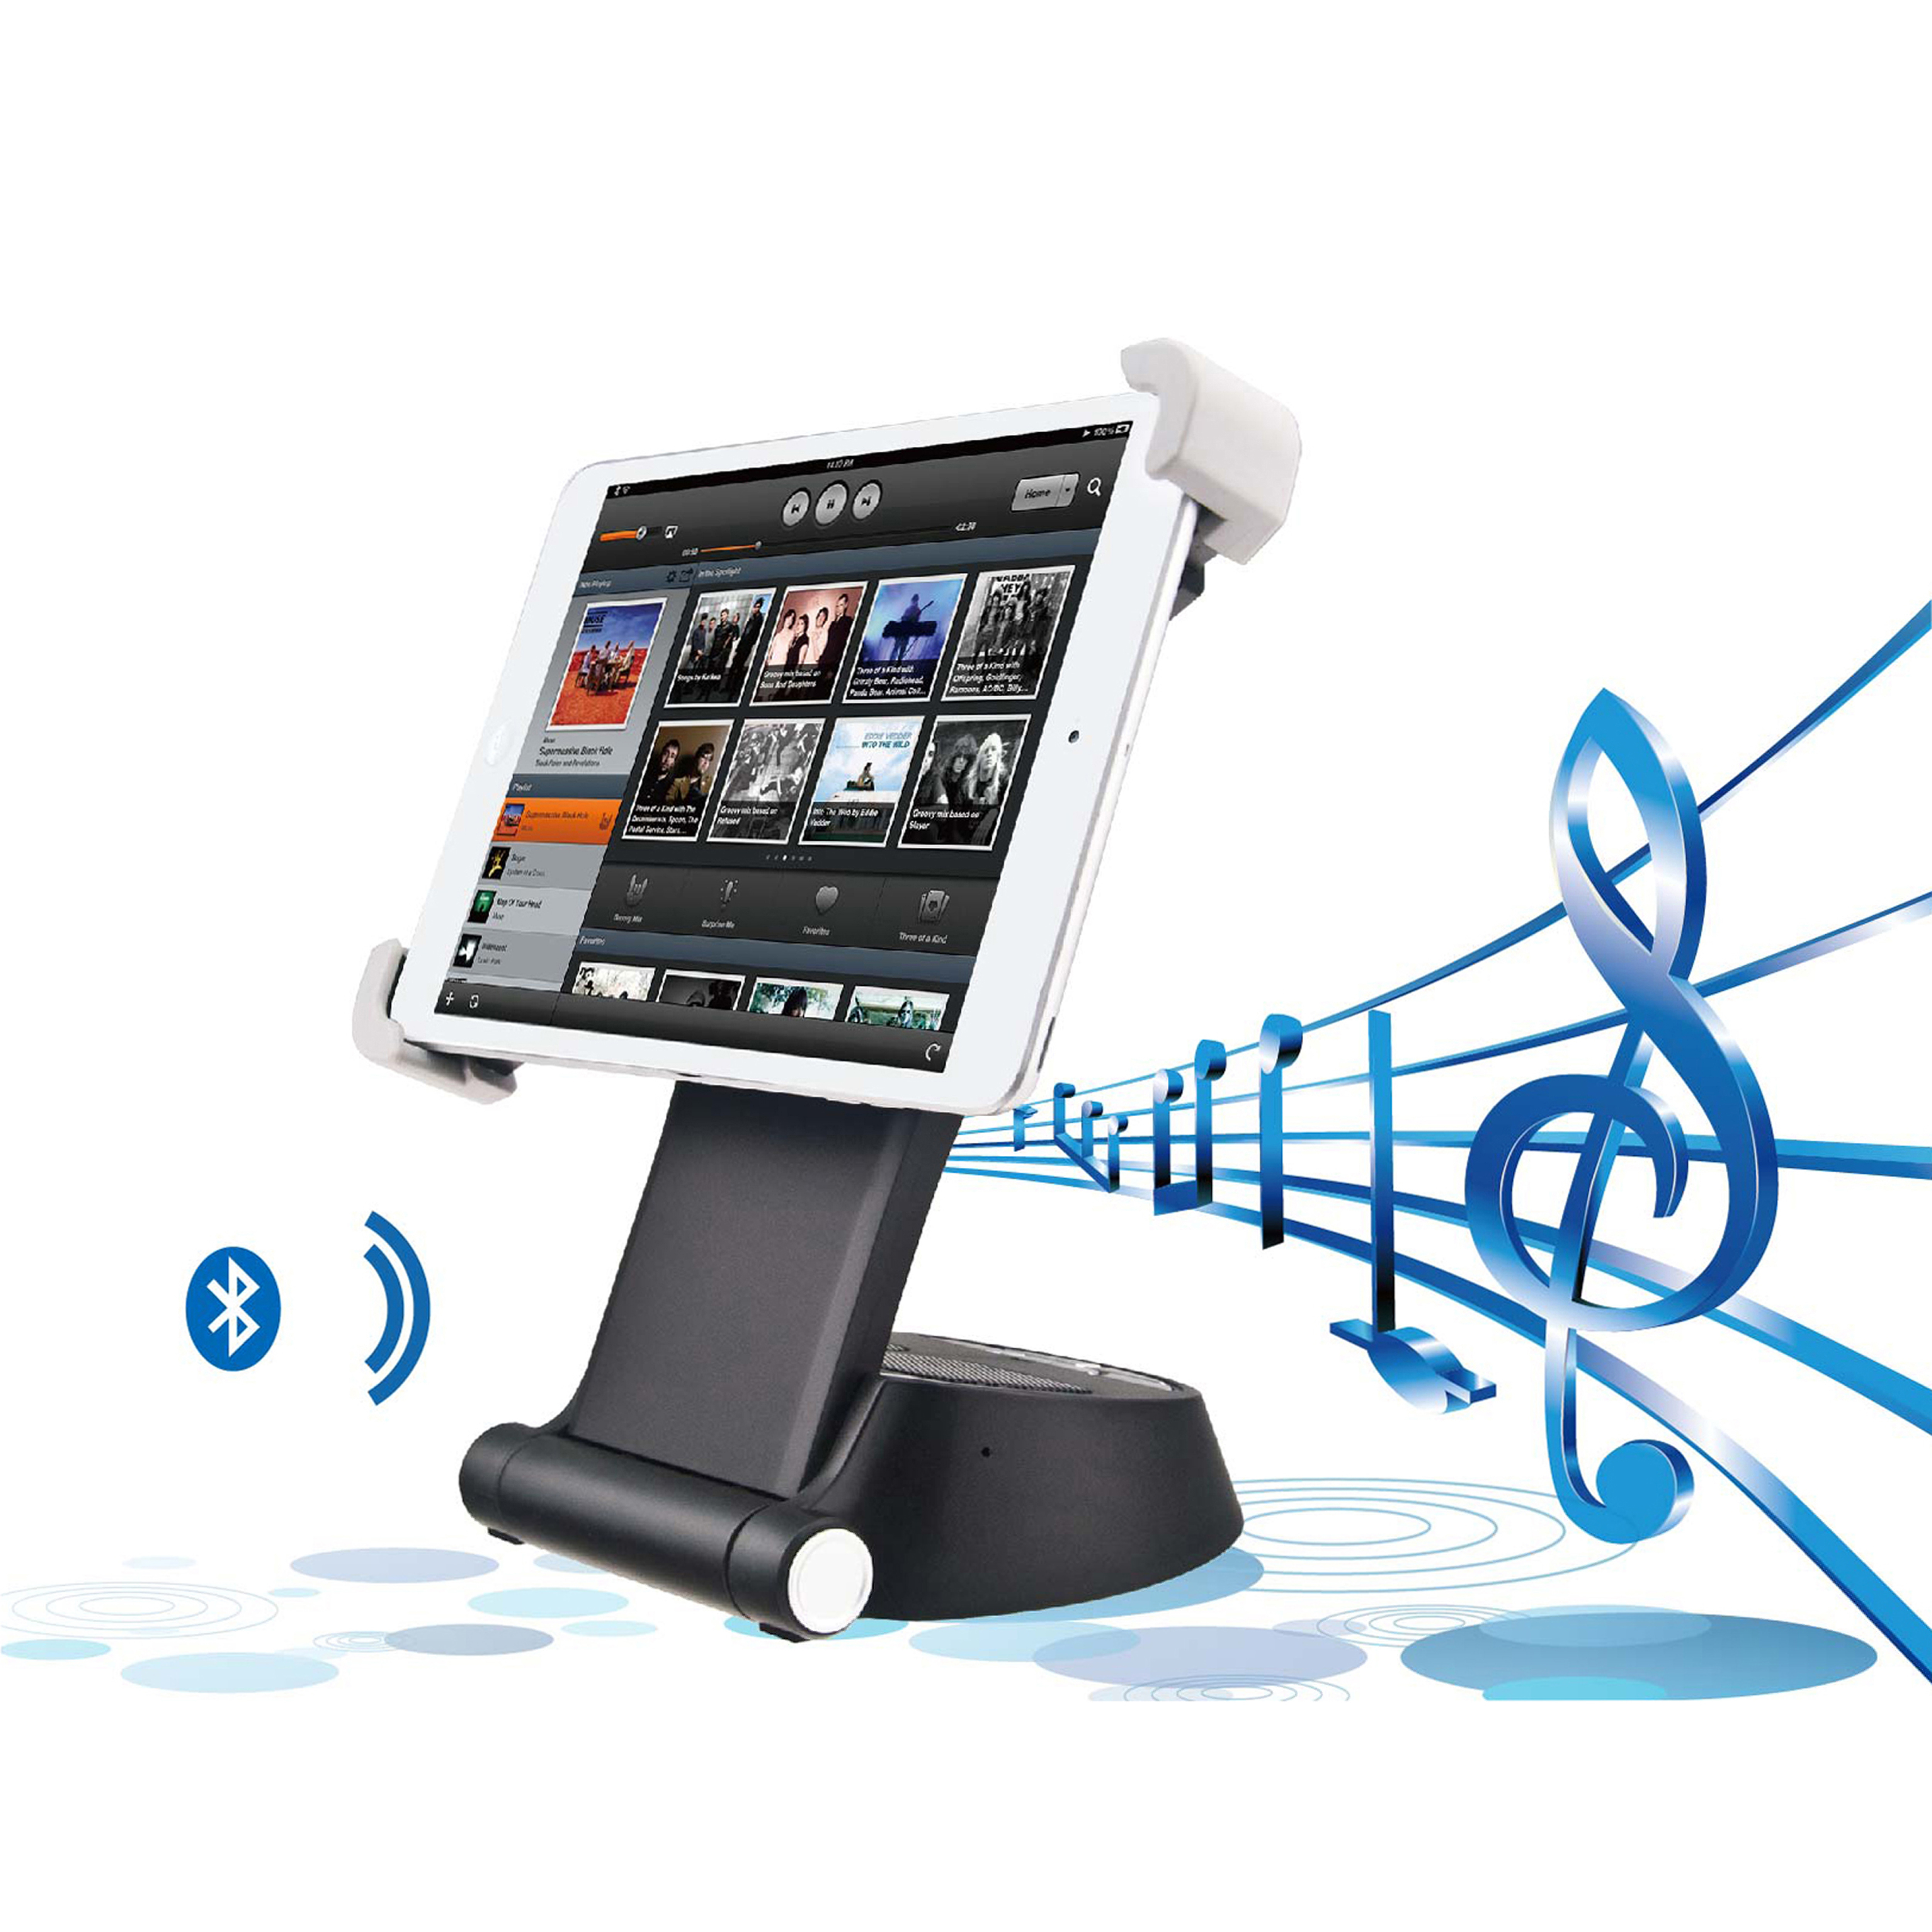 SmartHub Speaker and Stand For Your Smart Gadgets 558ae65c683d6f2e7a8b5f8c